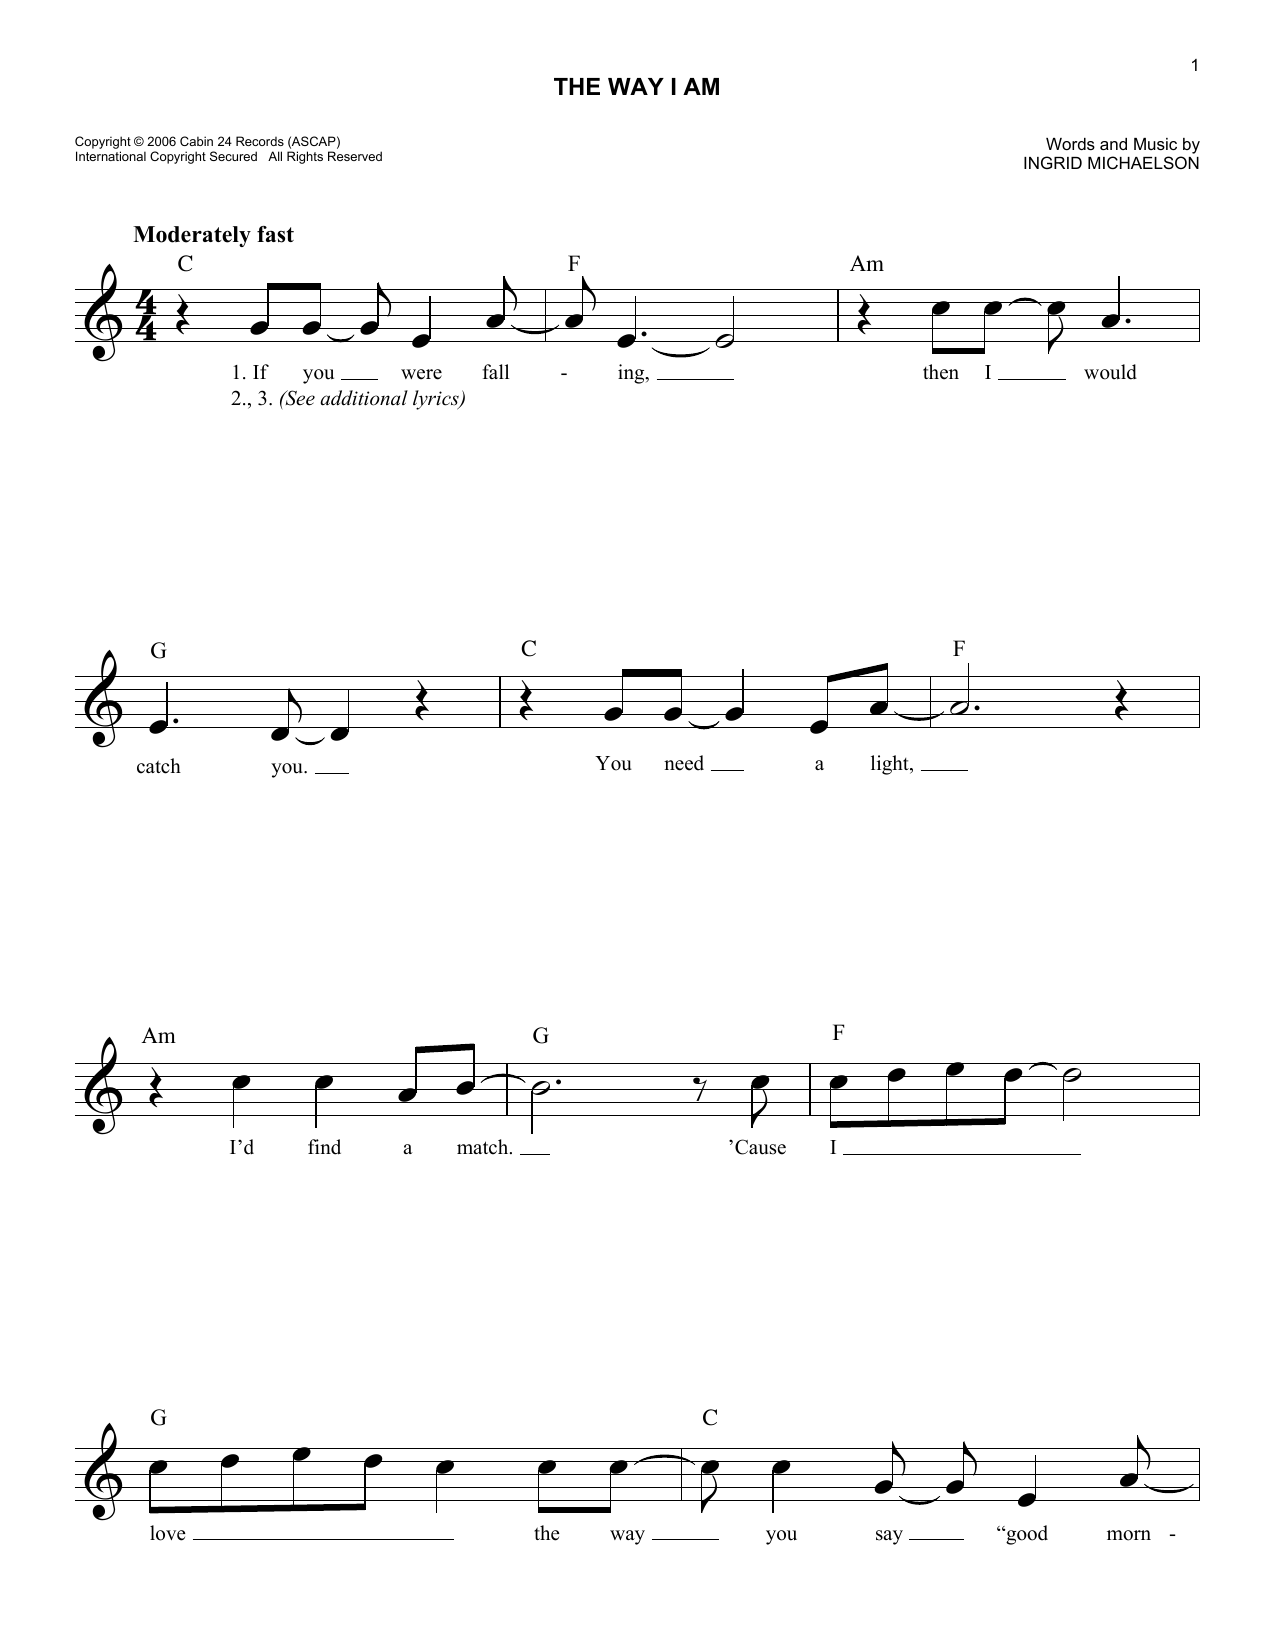 The Way I Am Sheet Music